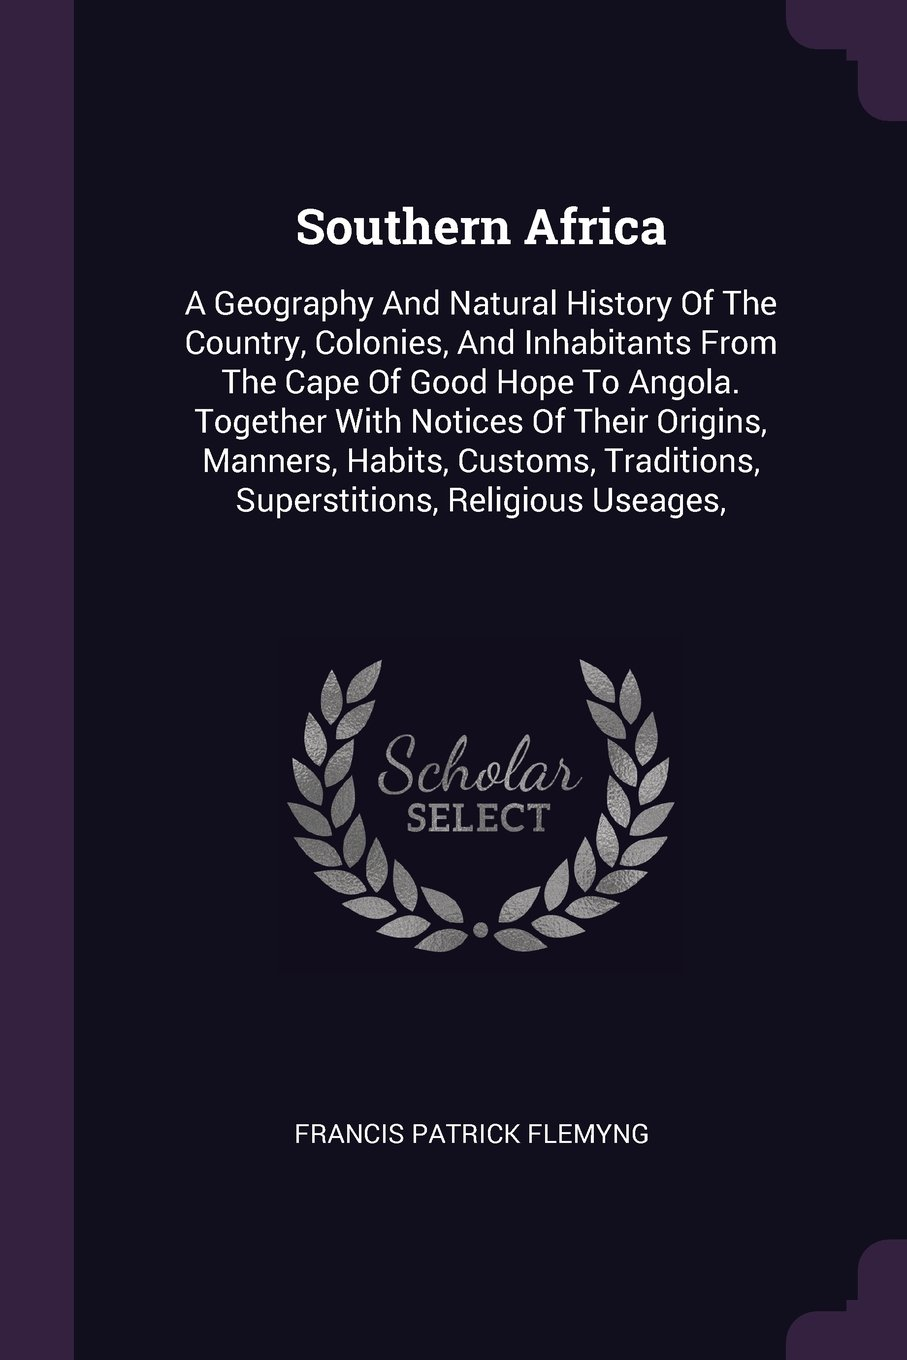 Southern Africa: A Geography And Natural History Of The Country, Colonies, And Inhabitants From The Cape Of Good Hope To Angola. Together With Notices ... Traditions, Superstitions, Religious Useages, ebook